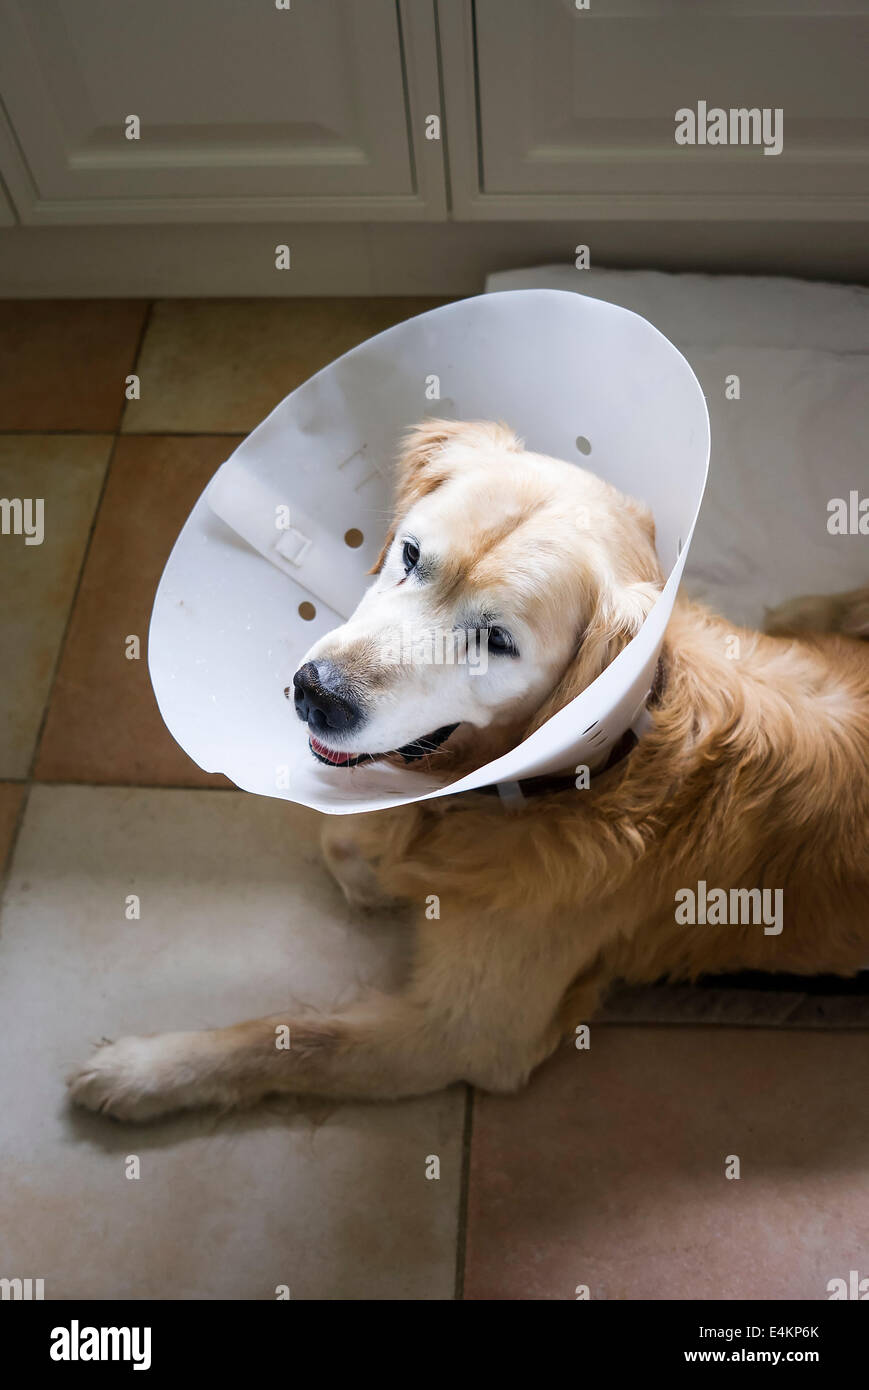 Dog wearing a surgical collar after a stomach operation to prevent accidental aggravation of healing wound - Stock Image